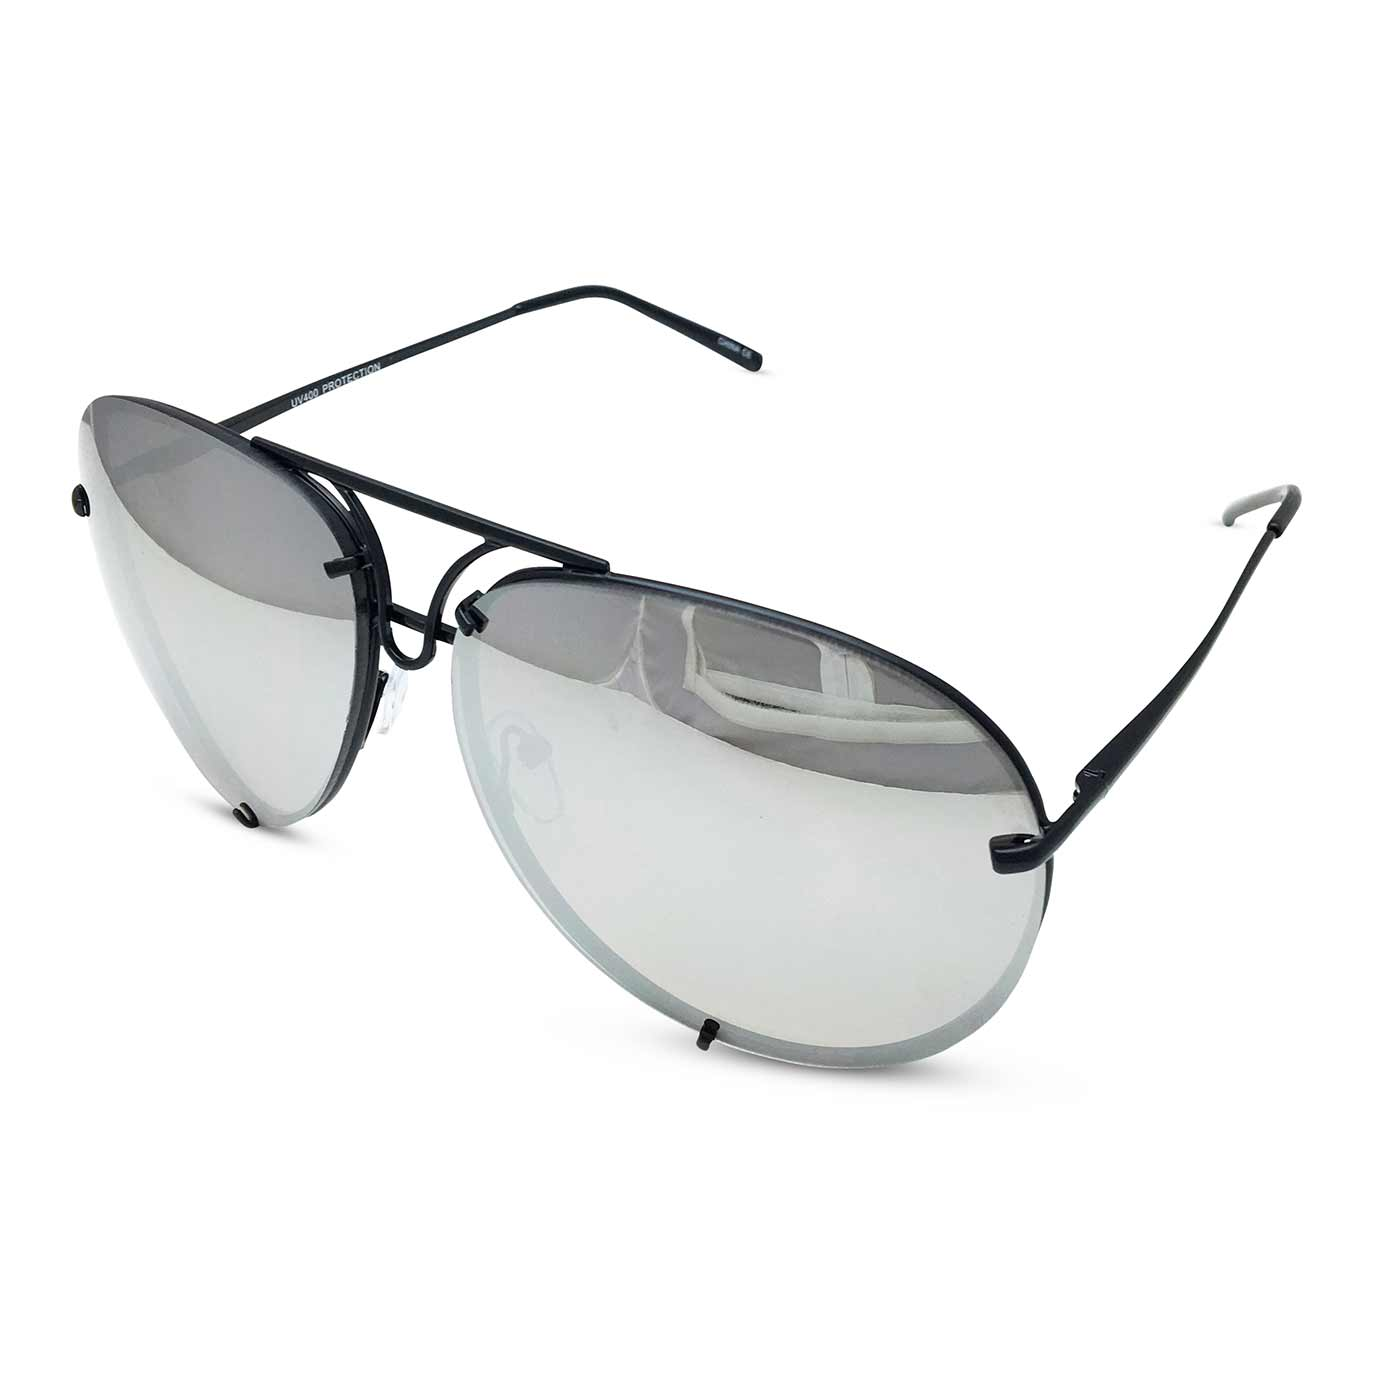 Oversized Giatta Aviators in Mirrored Silver/Black